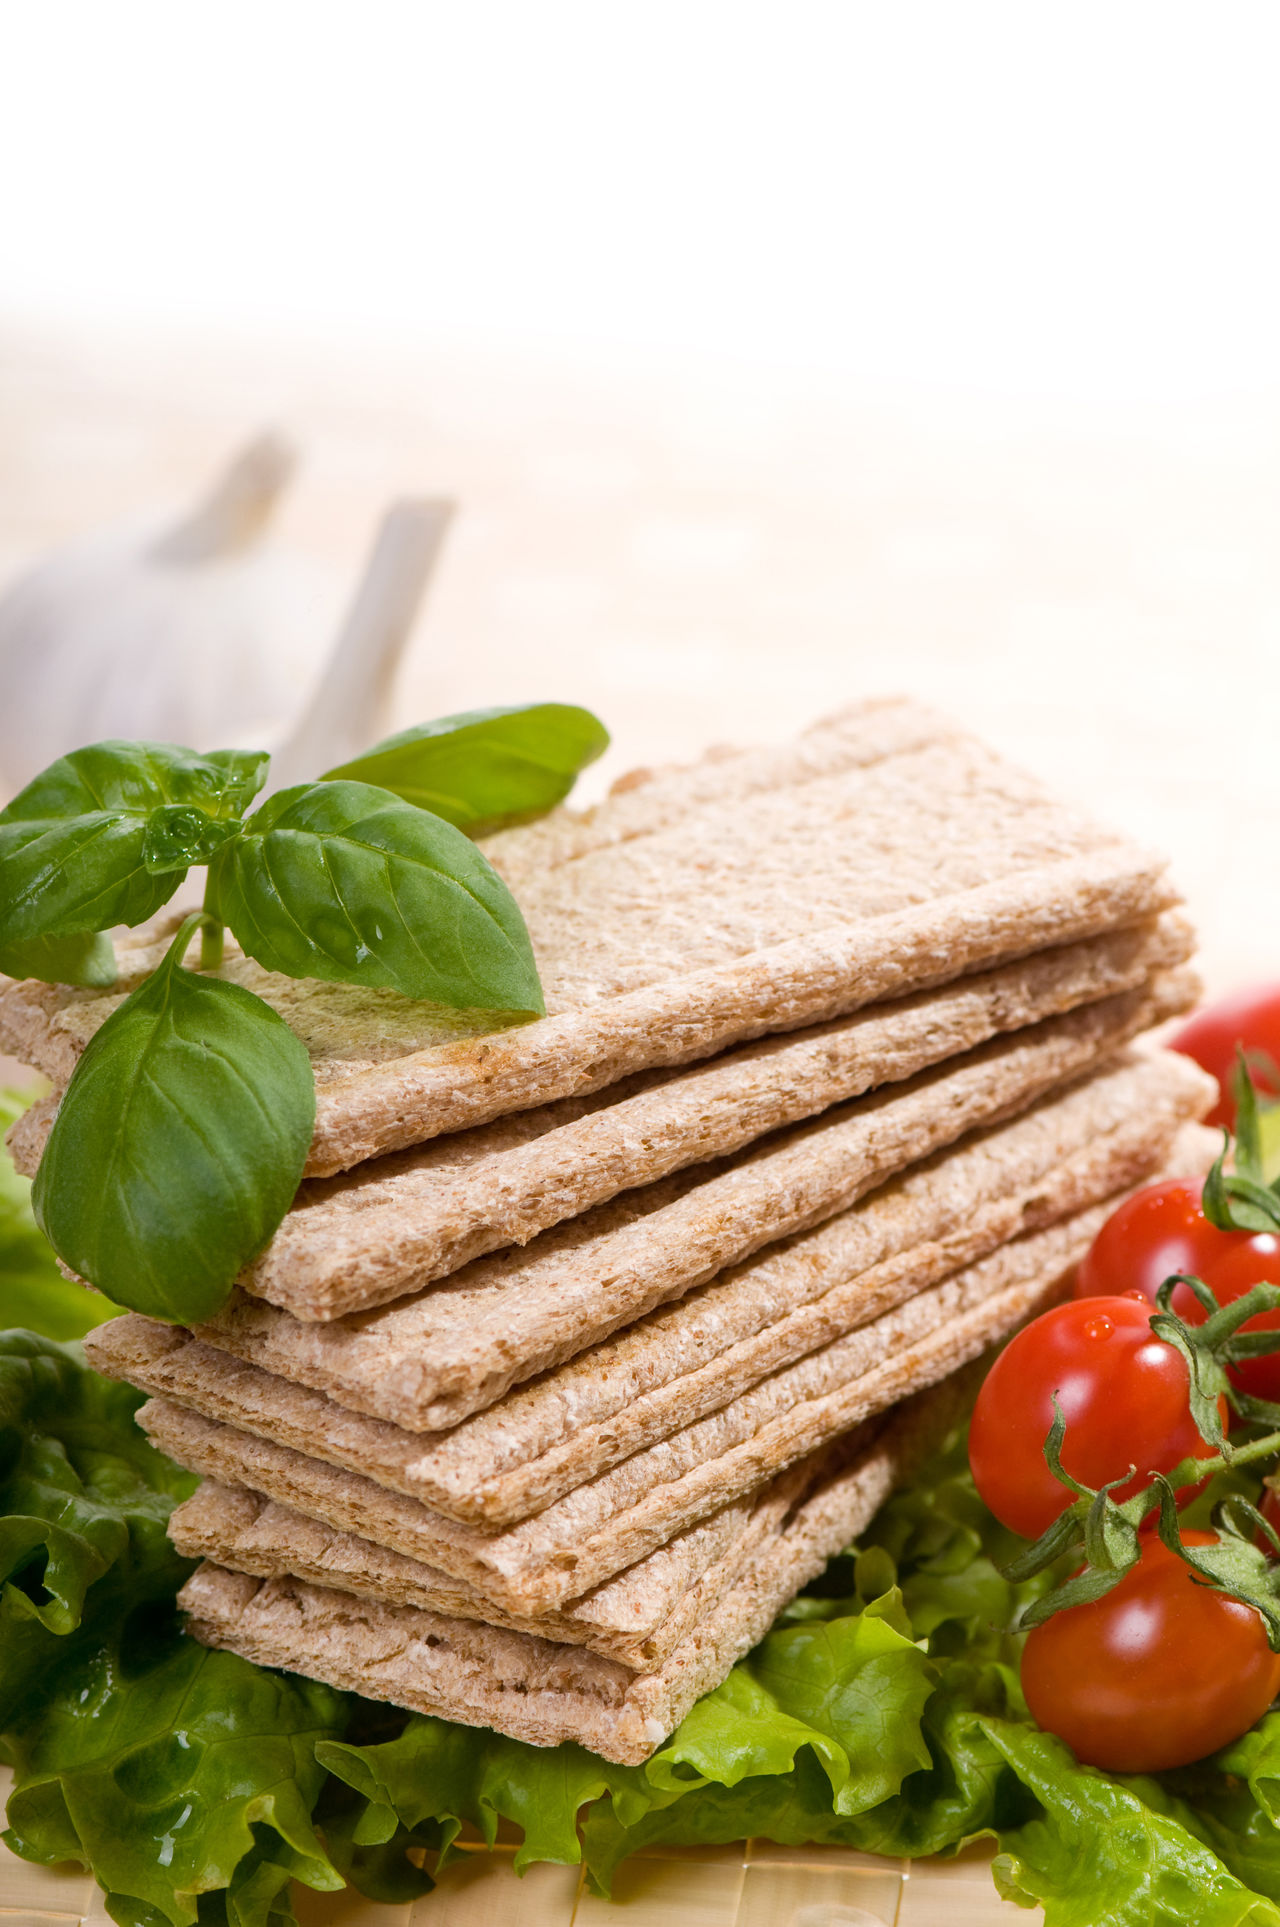 Stack of dry crisp bread slices with cherry tomato and basil green leaves on wooden mat, food staple of diet products in horizontal orientation, nobody. Bread Cereal Cracker Crackers Crisp Crispbread  Crisps Crispy Crunchy Diet Food Food And Drink Healthy Eating Knäckebröd No People Ocimum Ready-to-eat Slices Snack Snacks Tomato Vegetable Wafer Wasa Wholewheat